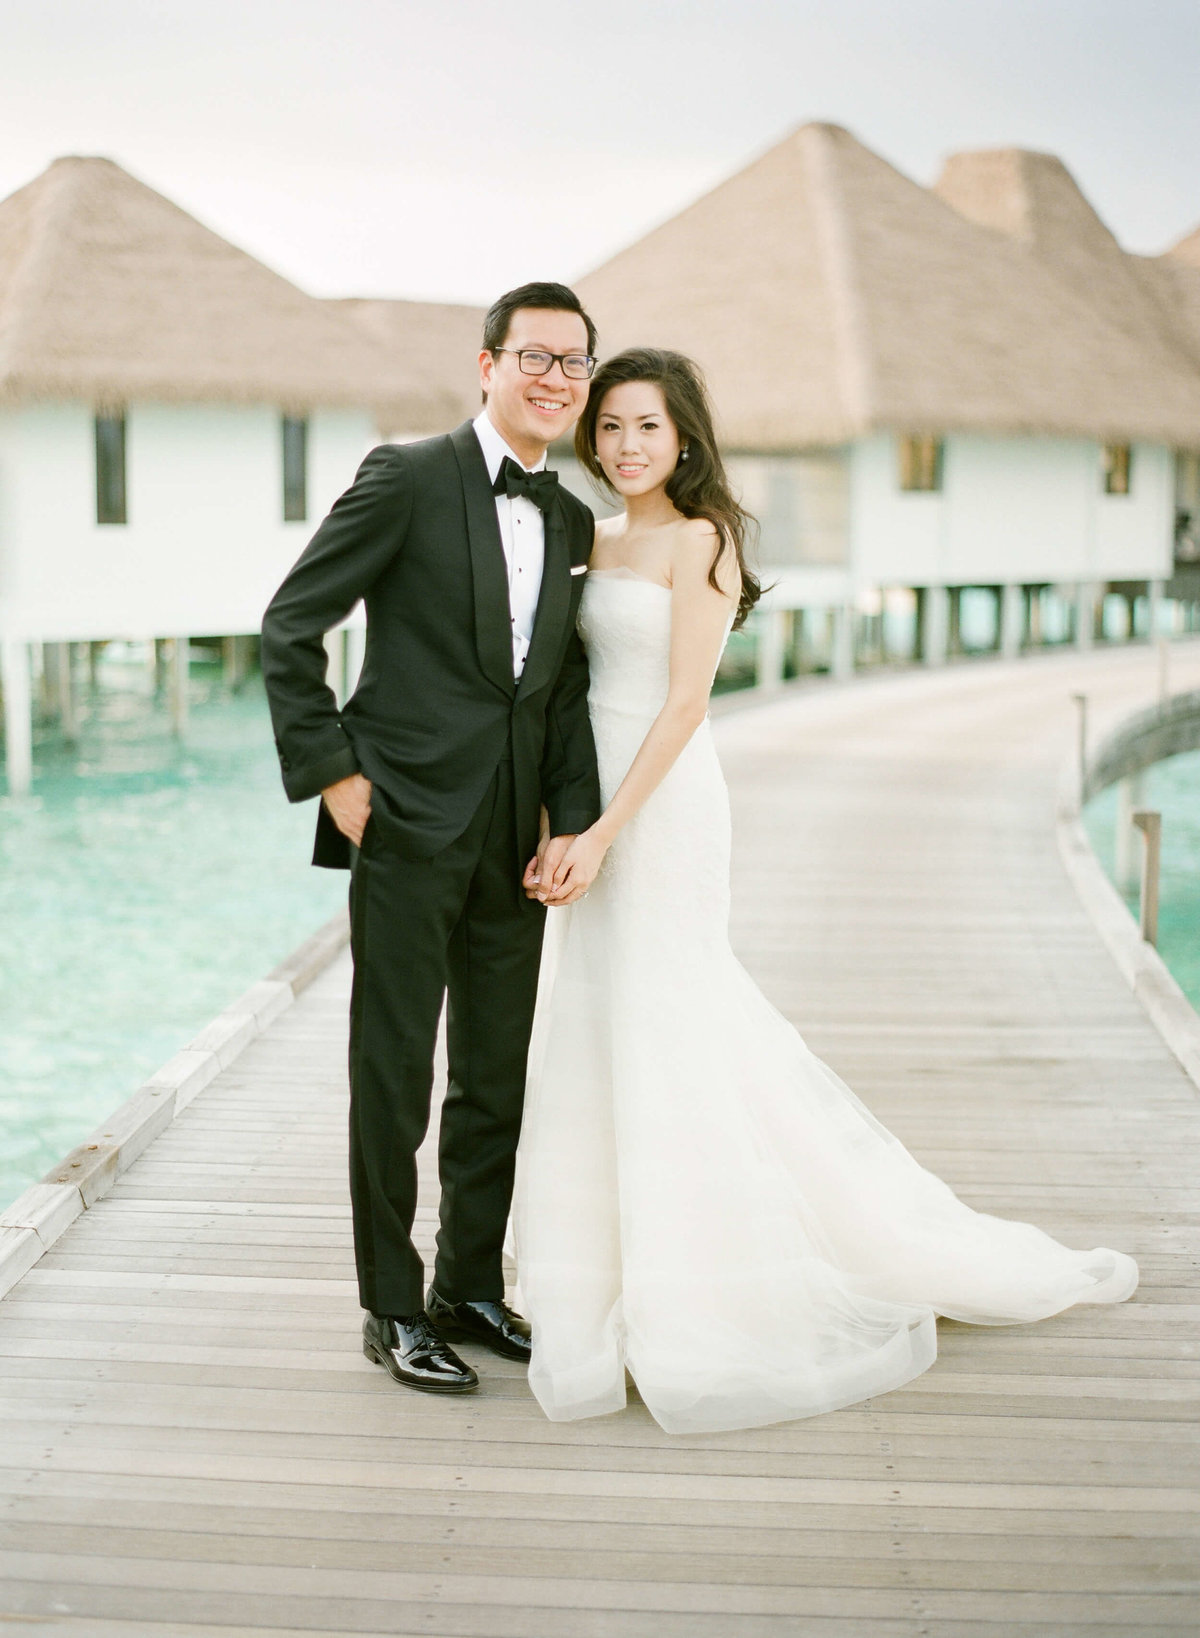 4-KTMerry-fine-art-wedding-couple-Maldives